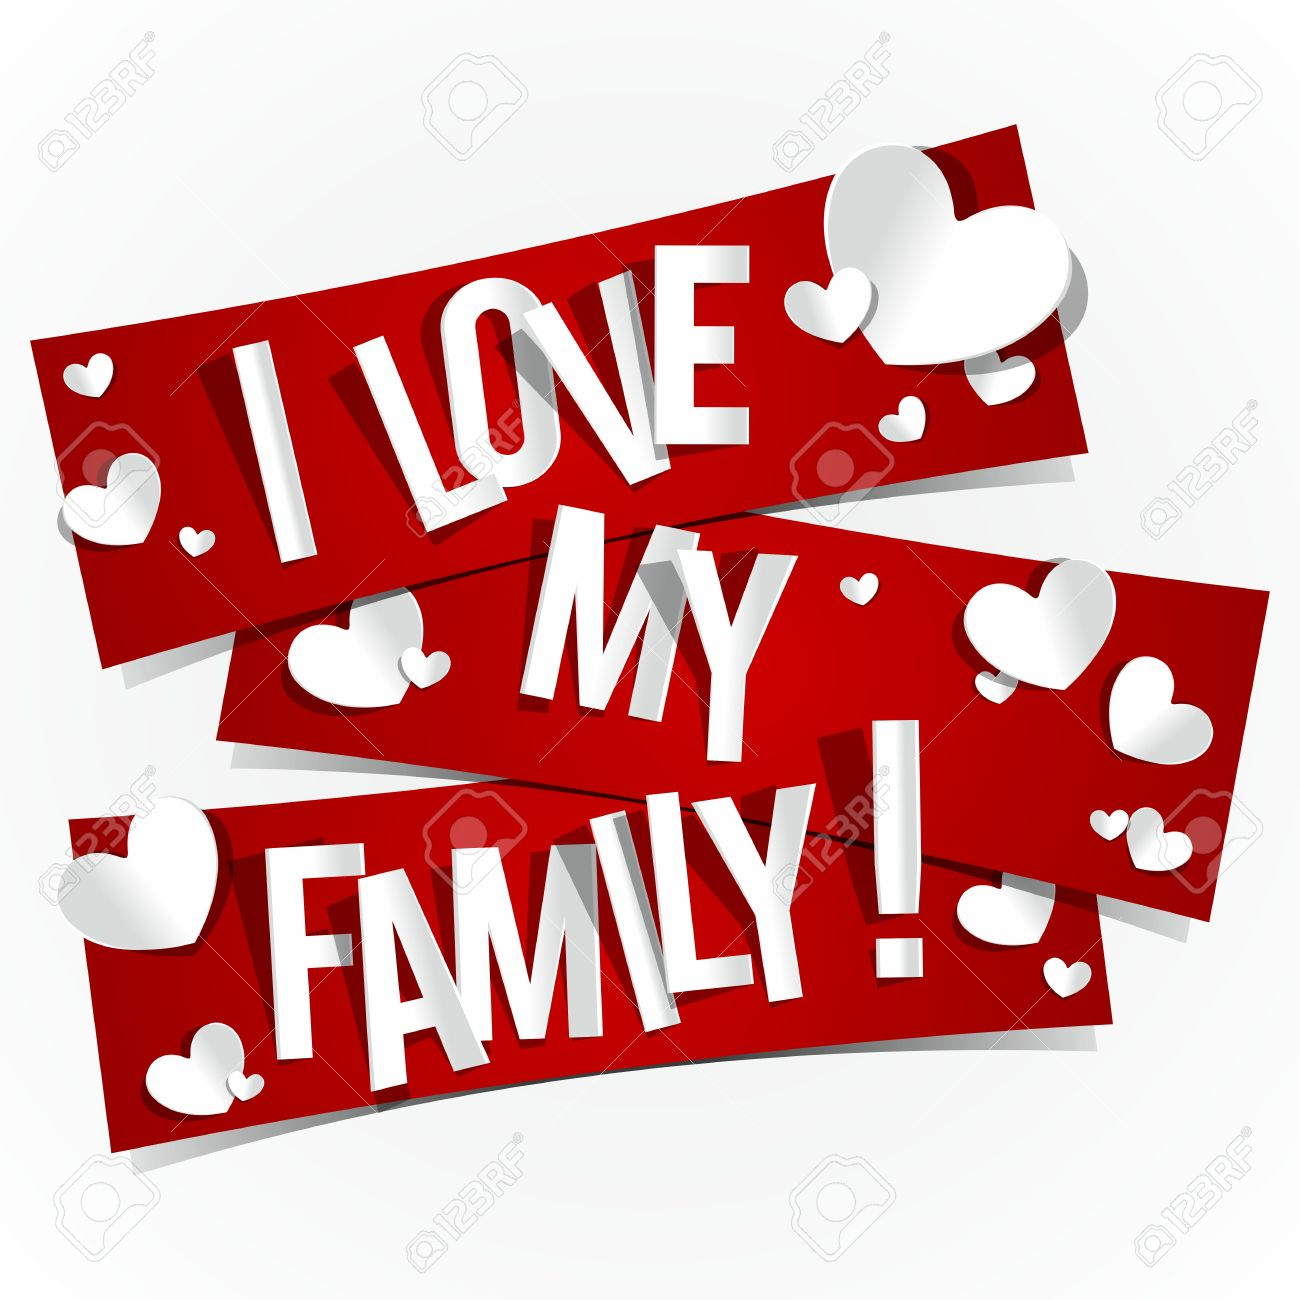 I Love My Family Banners Vector Illustration Royalty Free Cliparts